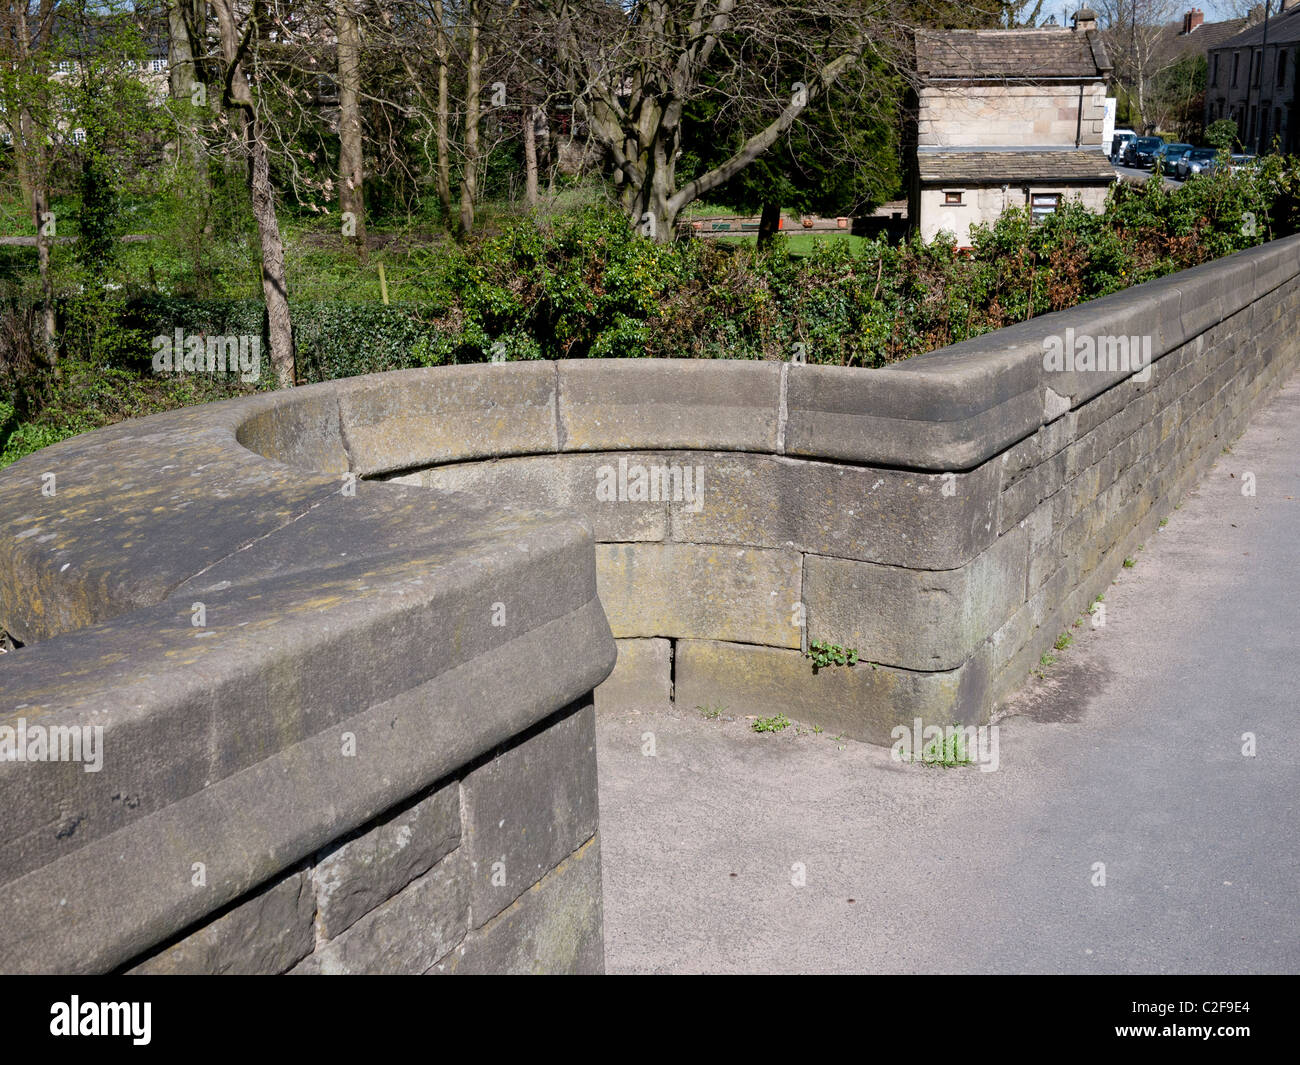 Cut outs for pedestrian use on Whalley Bridge, Whalley, Clitheroe, Lancashire, England, UK. - Stock Image